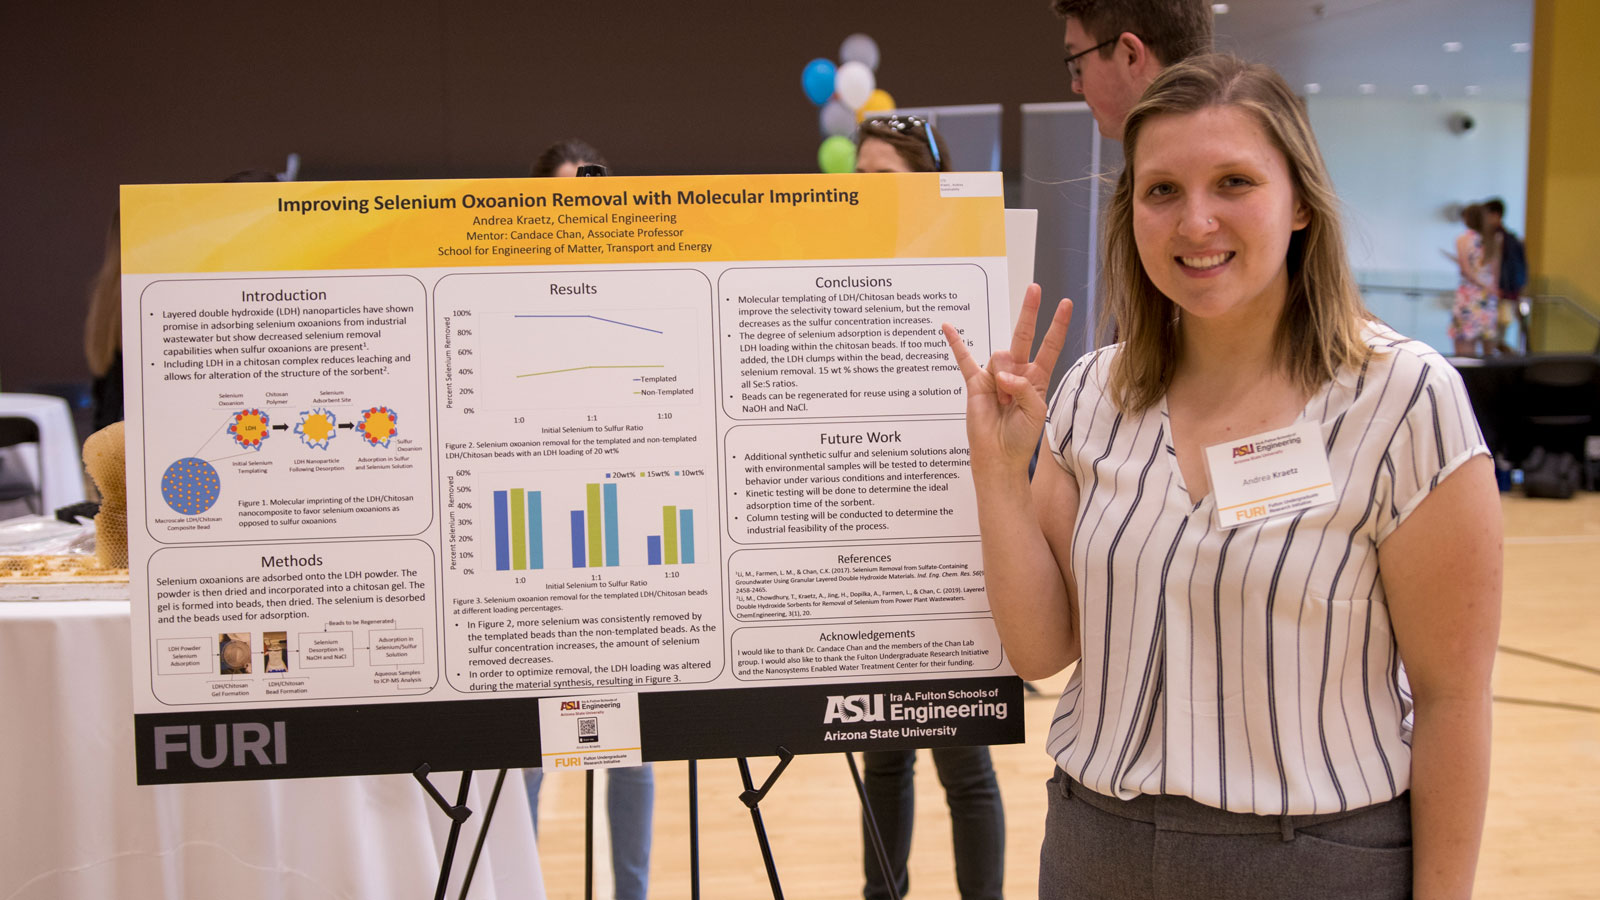 A student stands in front of a research poster.